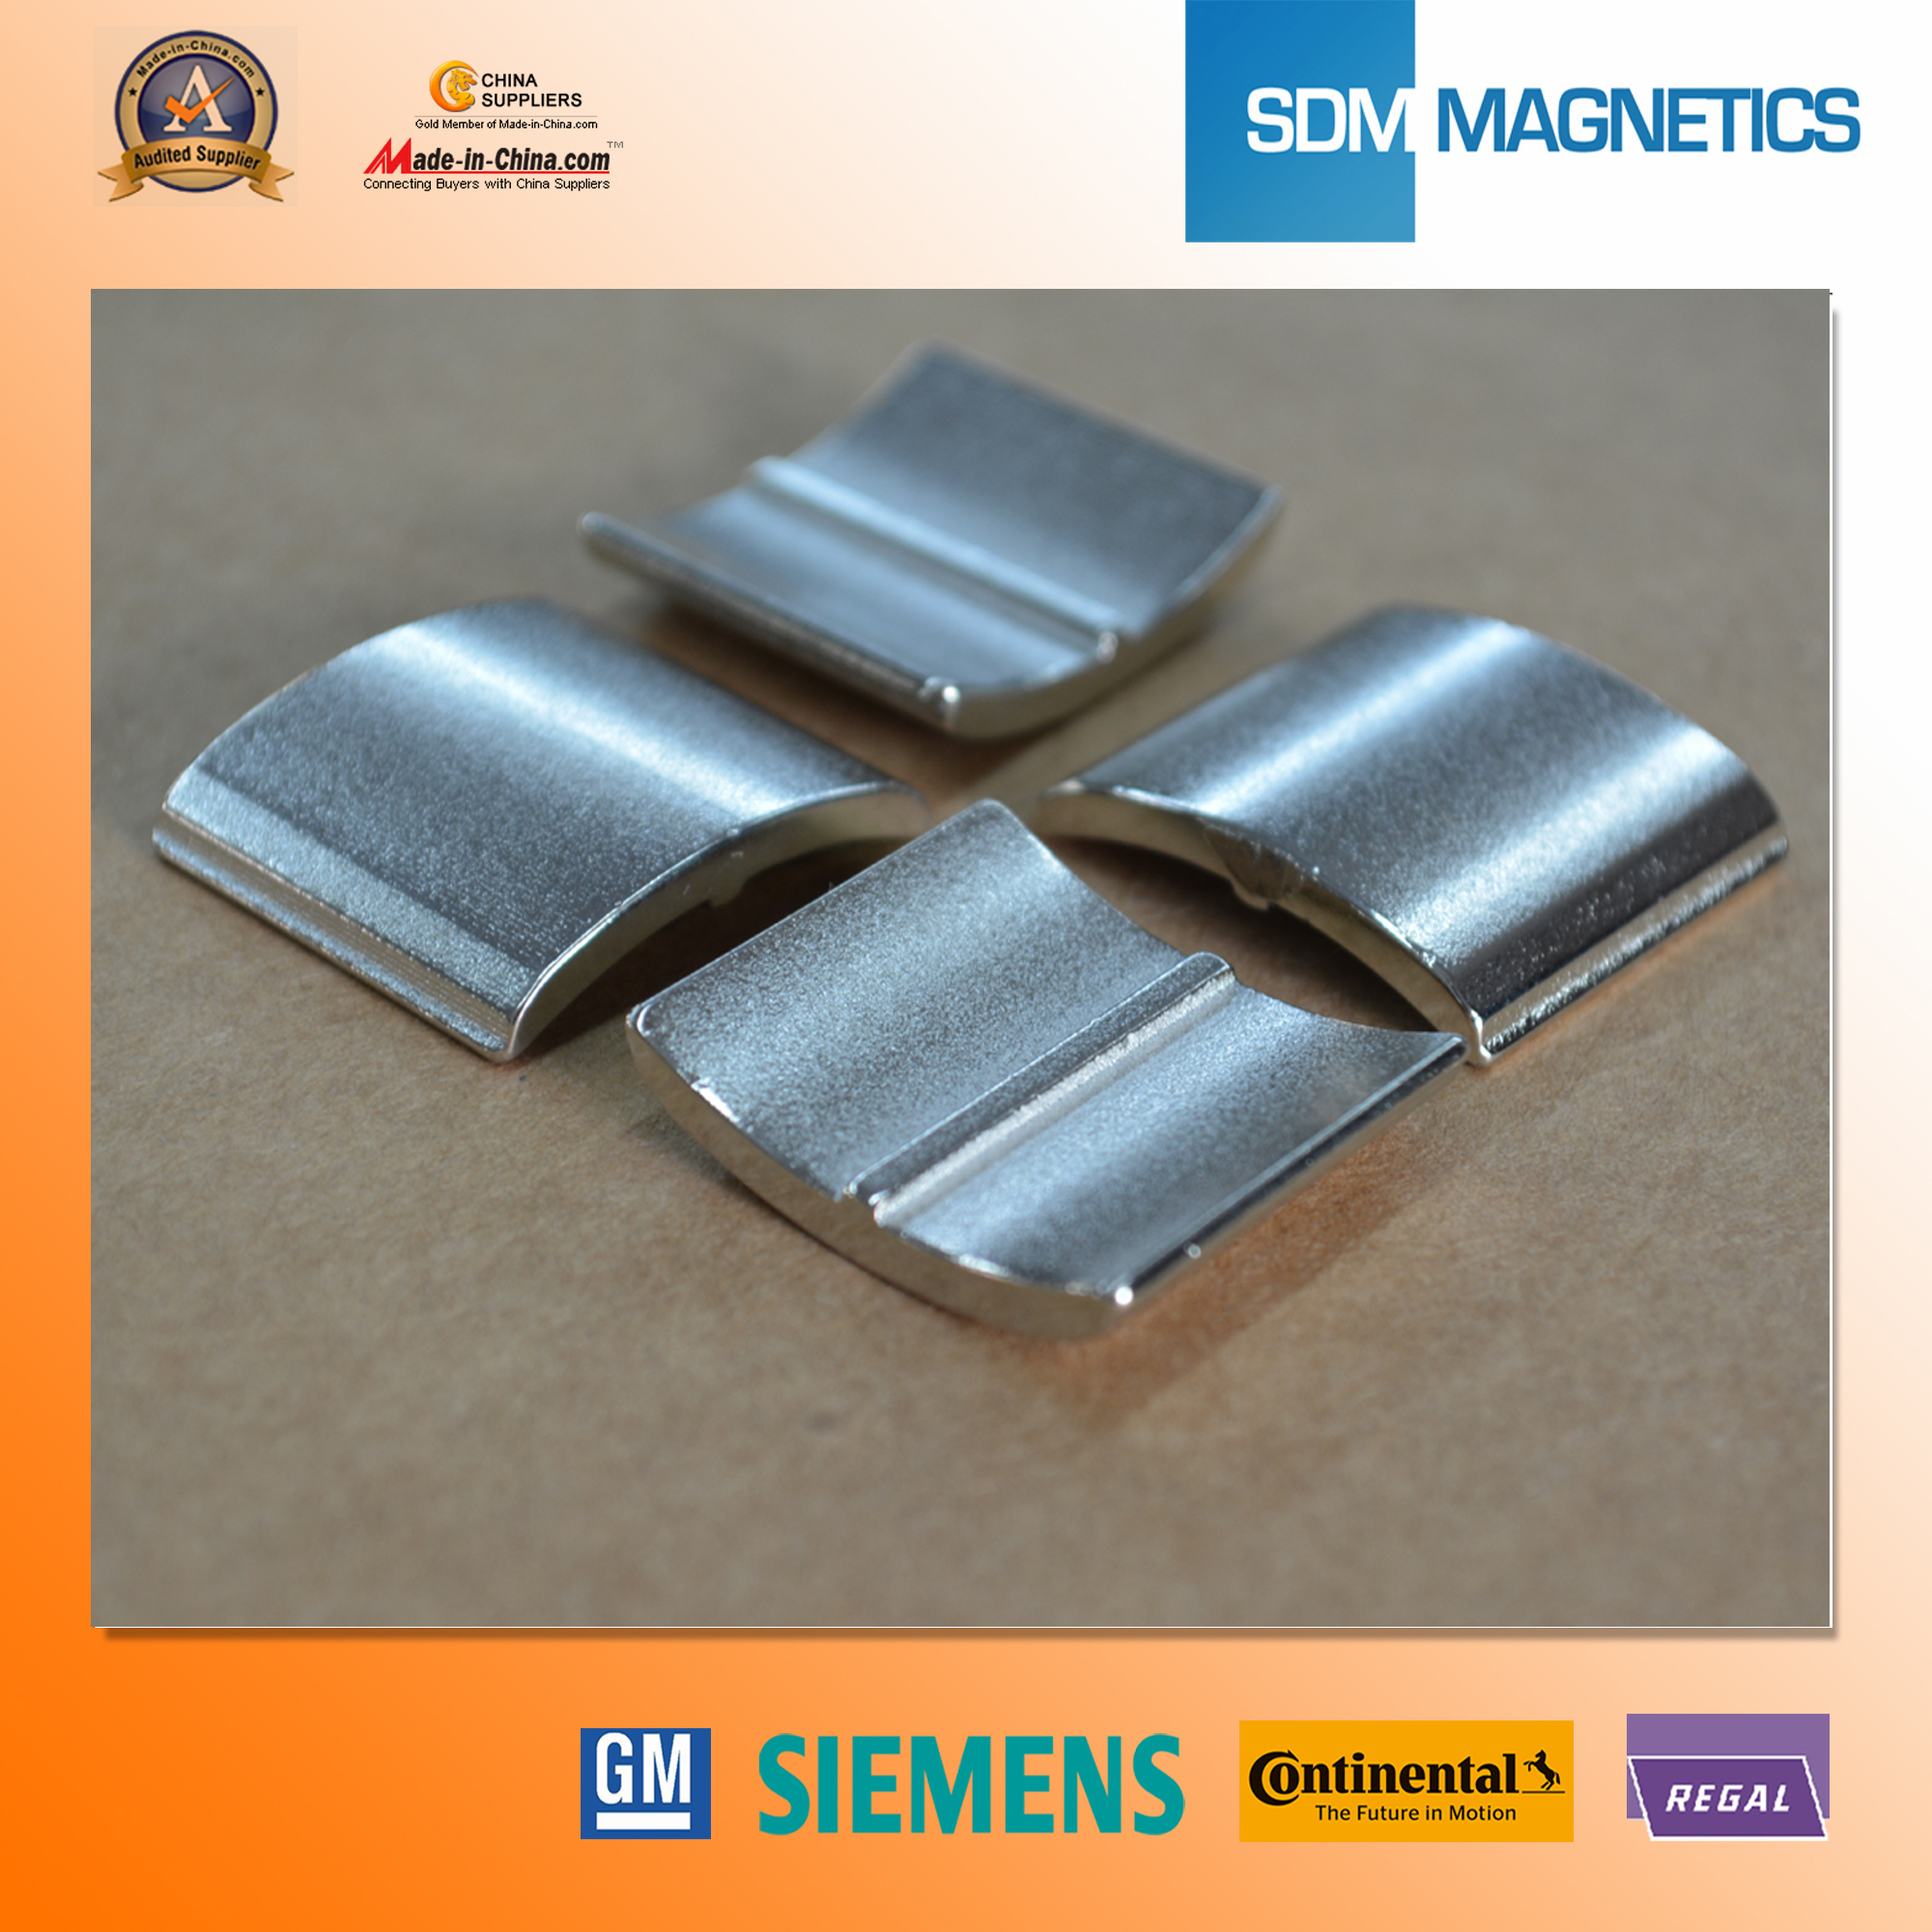 SDM Magnetics Brief Introduction